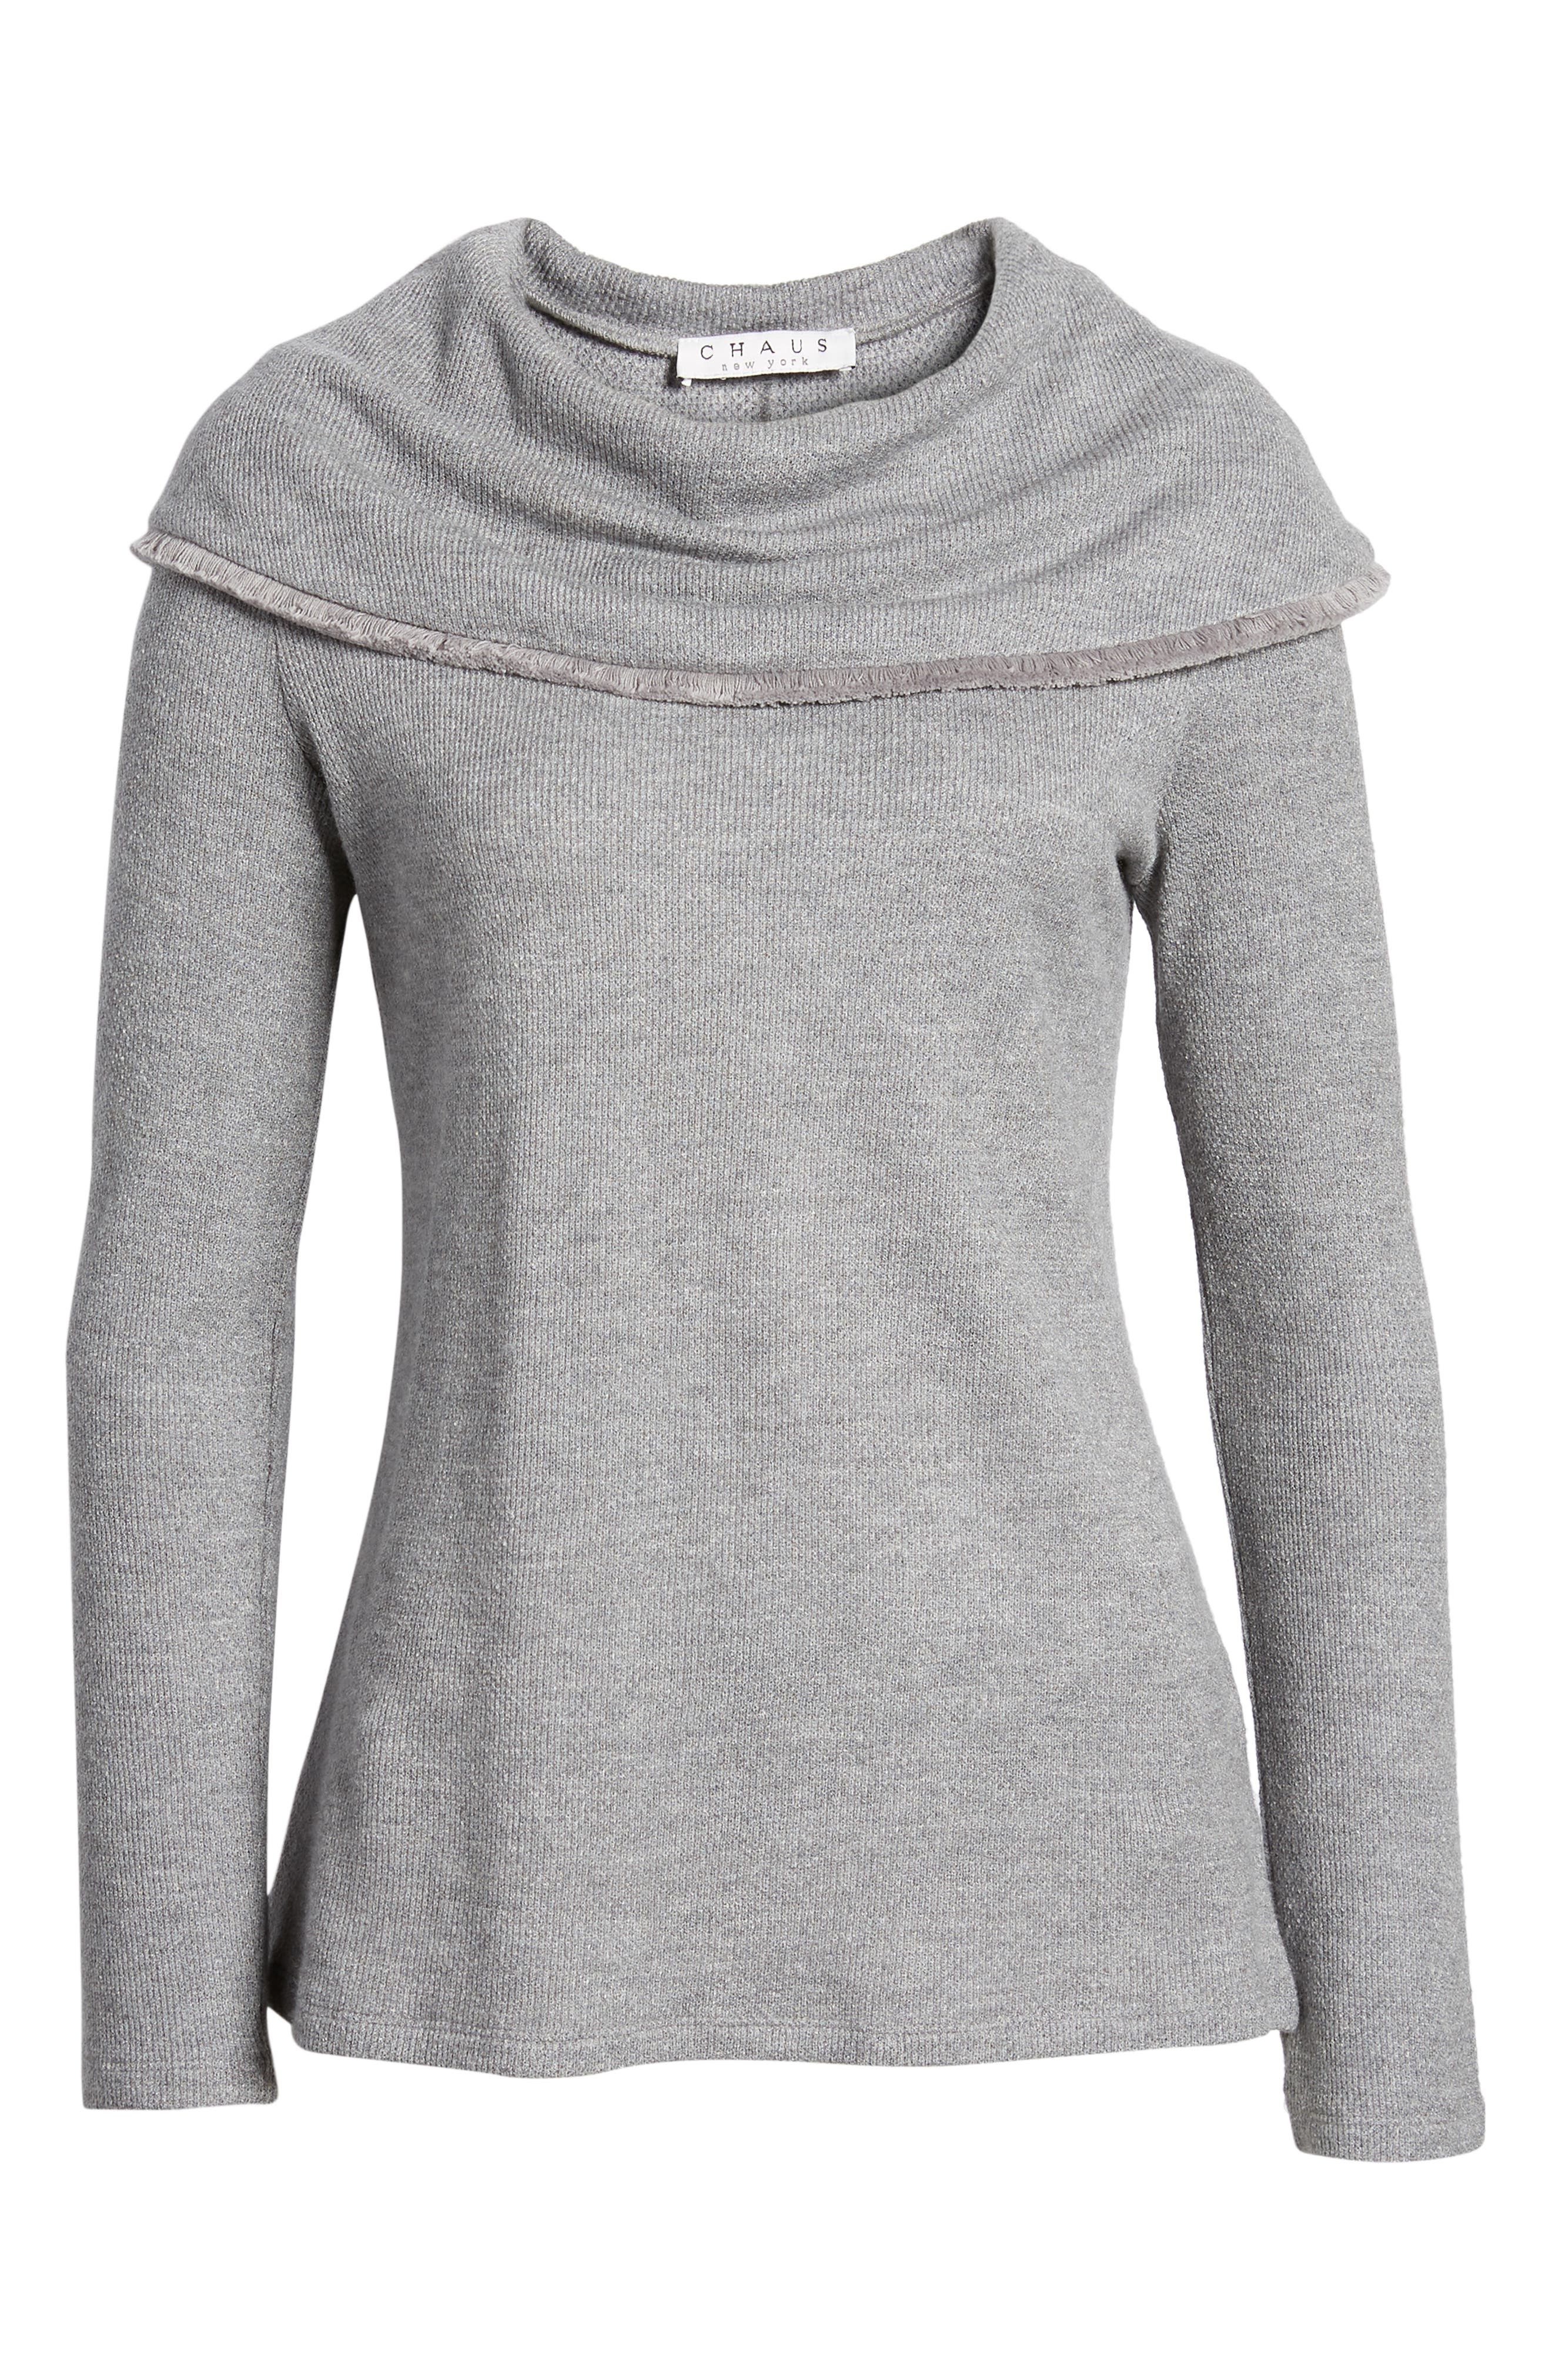 Long Sleeve Cowl Neck Sweater,                             Alternate thumbnail 6, color,                             LUXE GREY